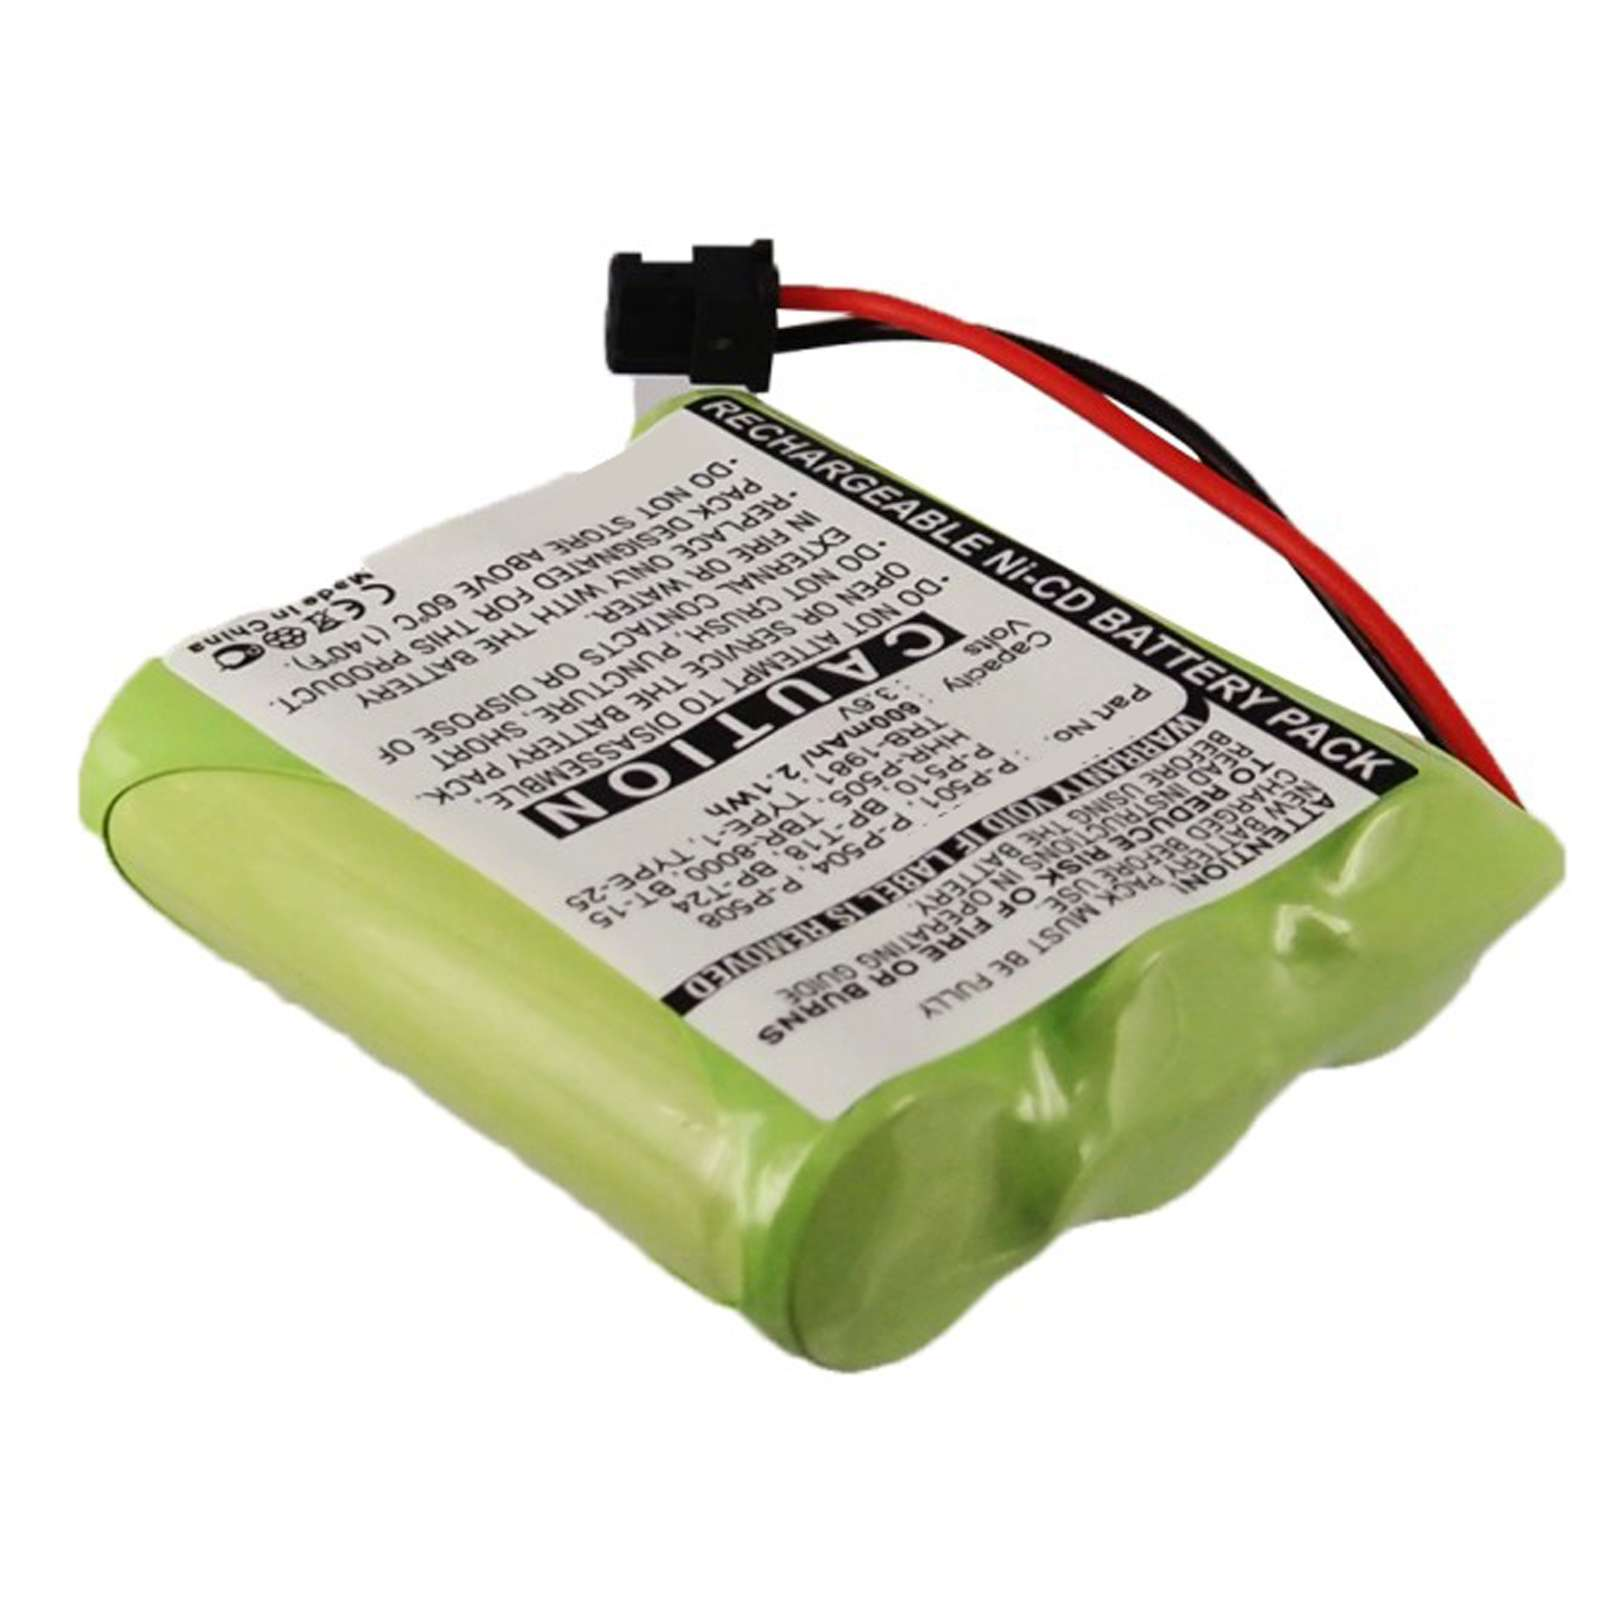 Mighty Max Battery 6V 4.5AH SLA Battery Replacement for APC RBC10-2 Pack Brand Product